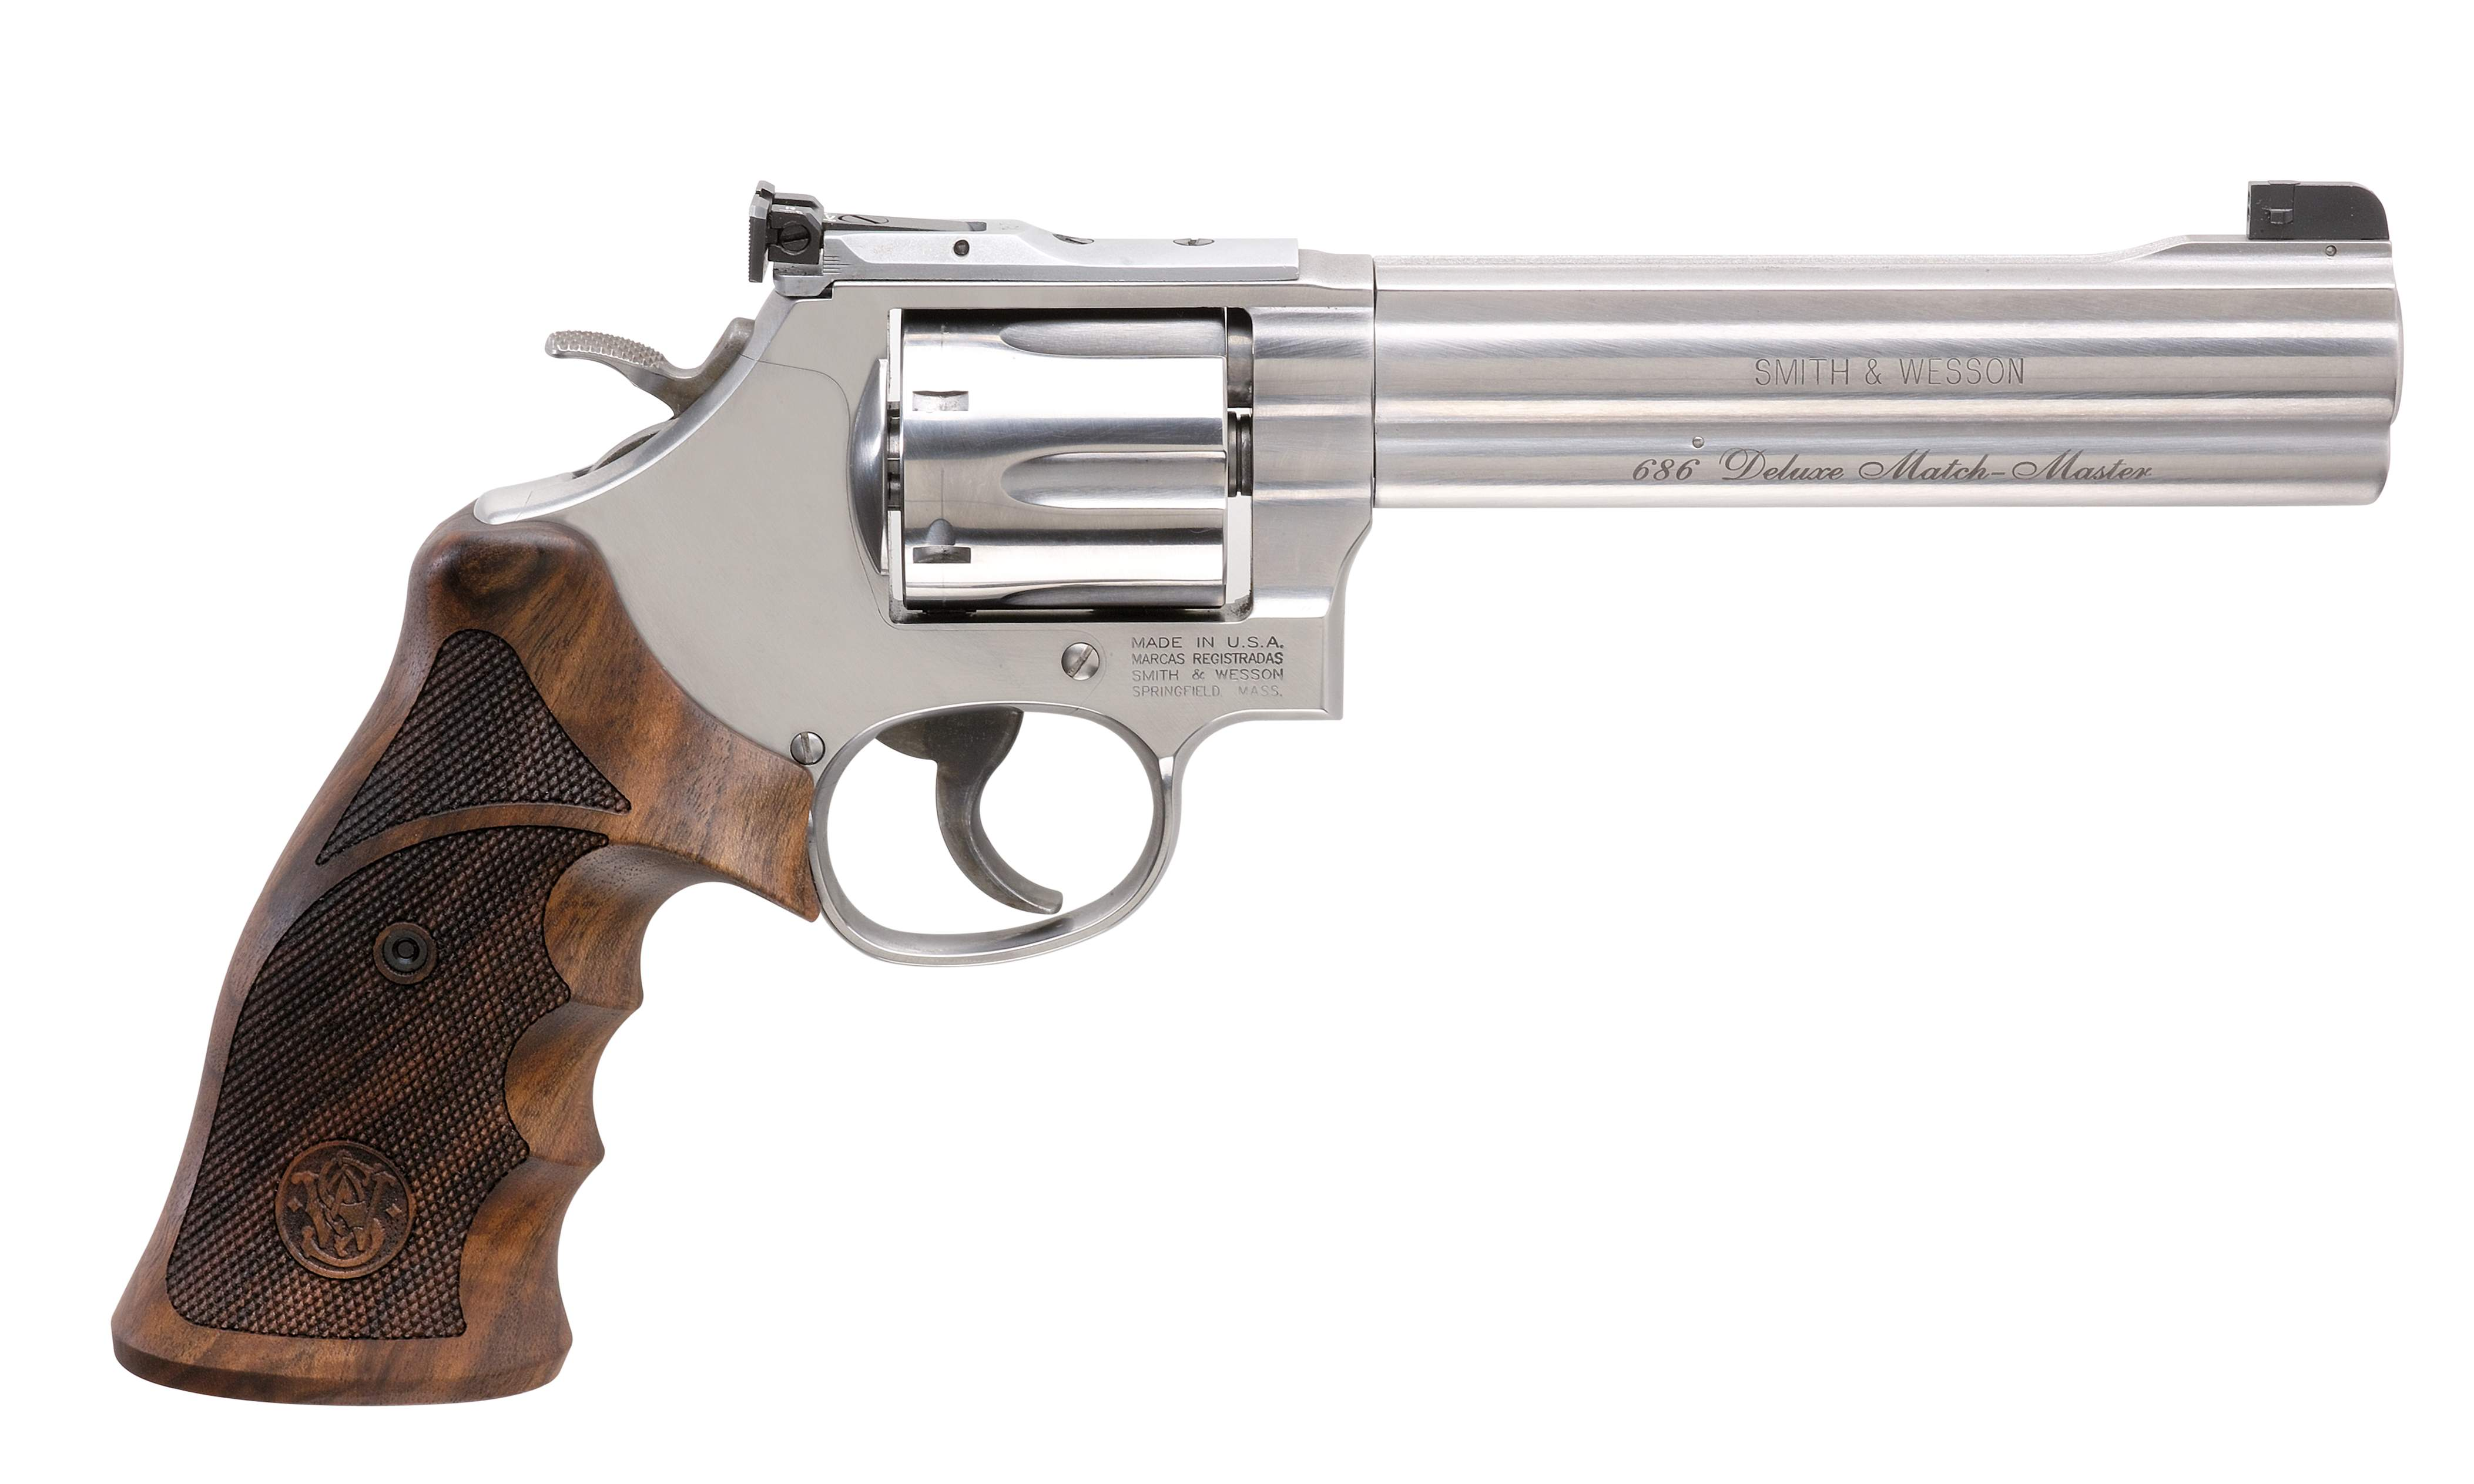 S&W 686 Target Champion Deluxe Match Master